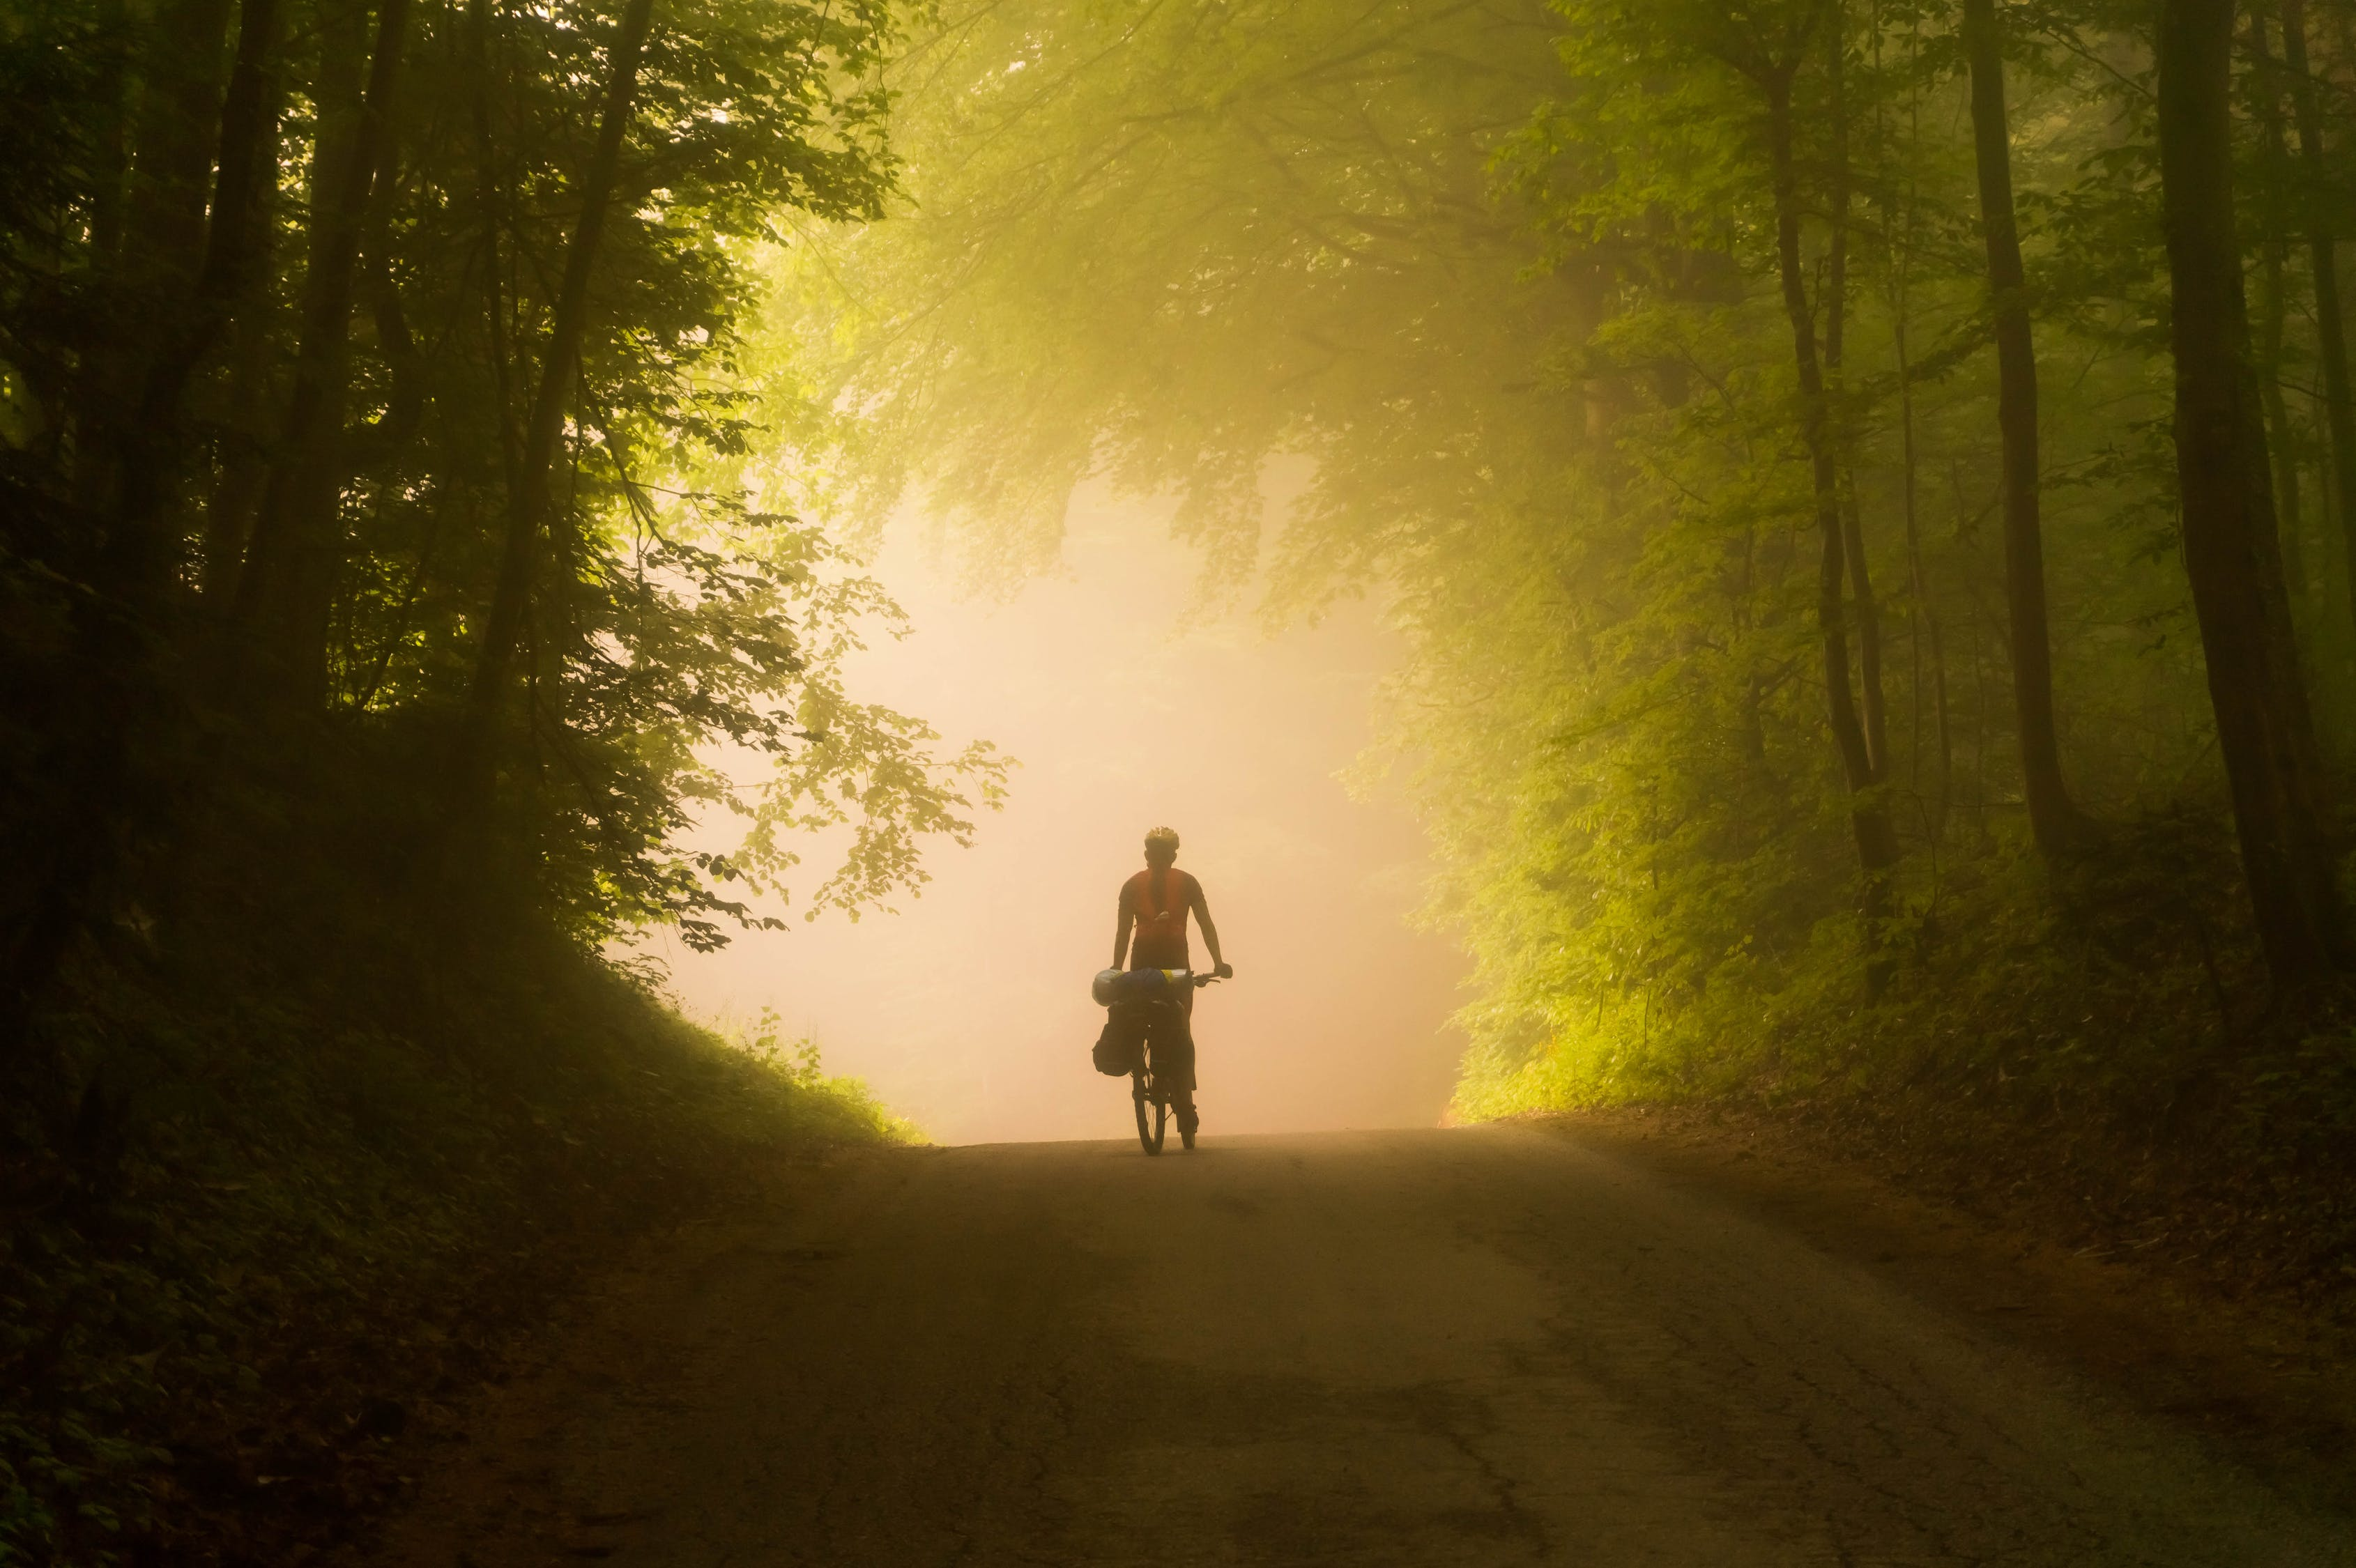 Person Riding Bicycle in the forest